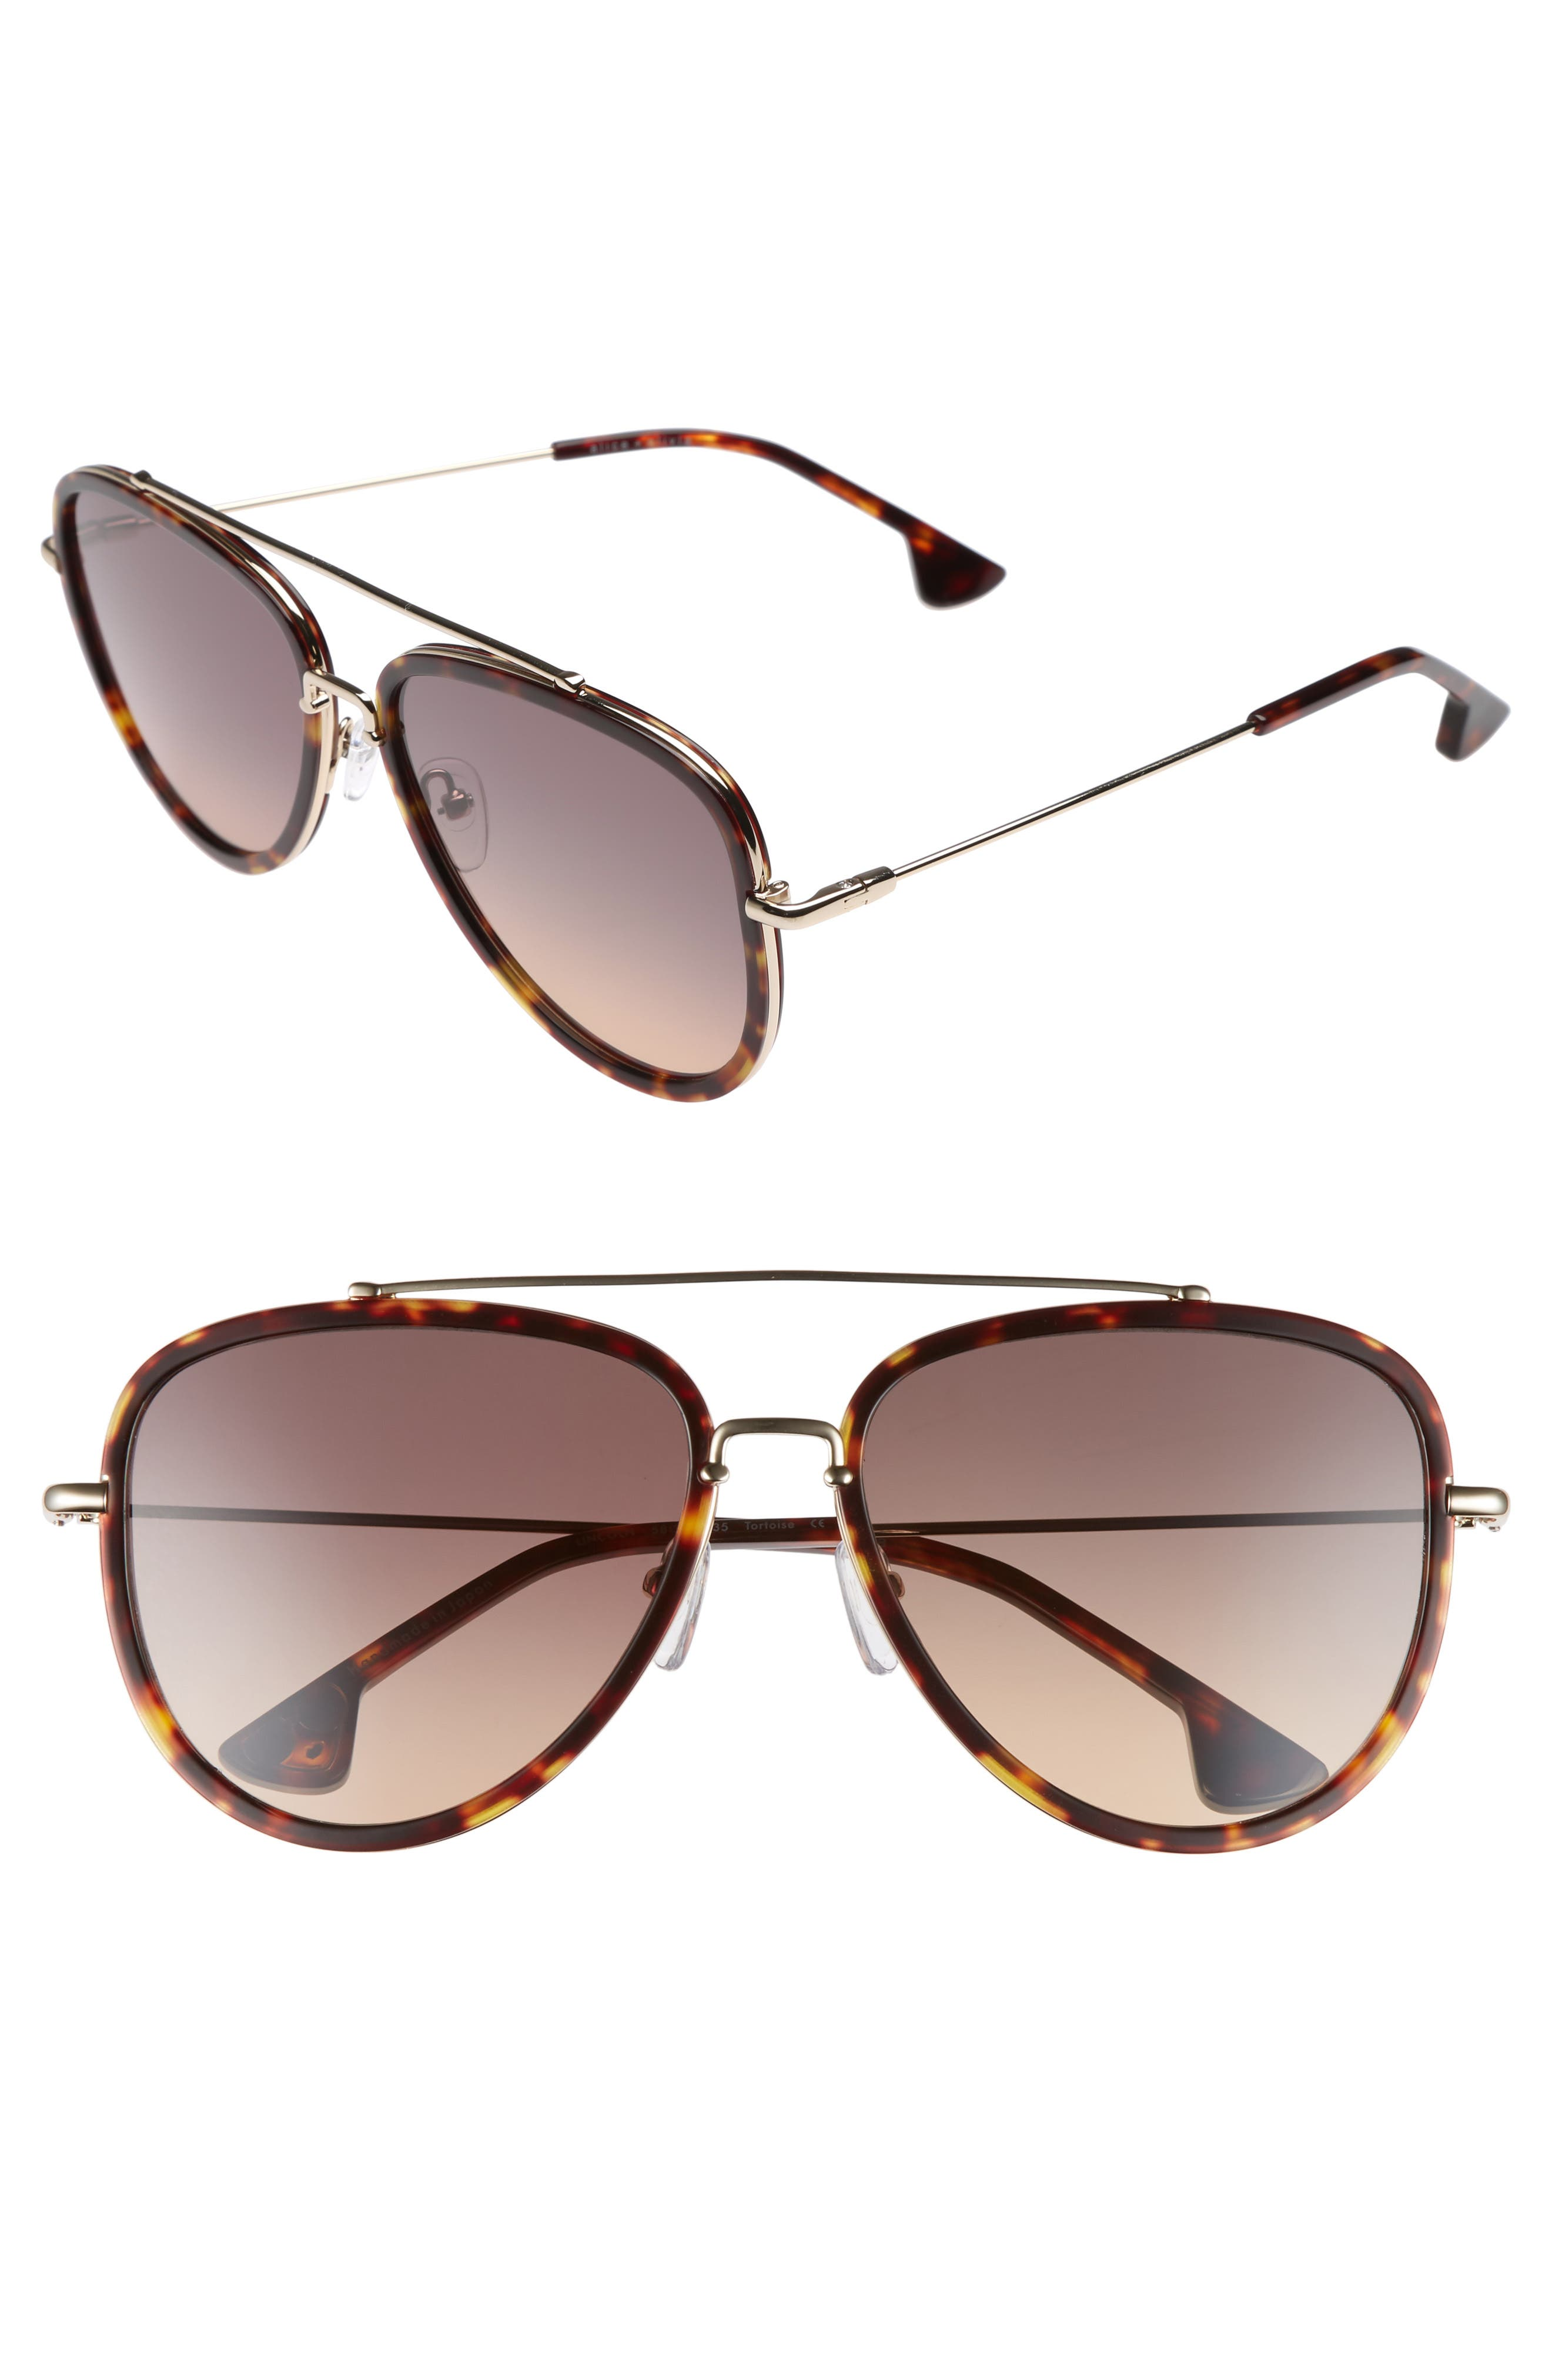 Lincoln 58mm Aviator Sunglasses,                             Main thumbnail 2, color,